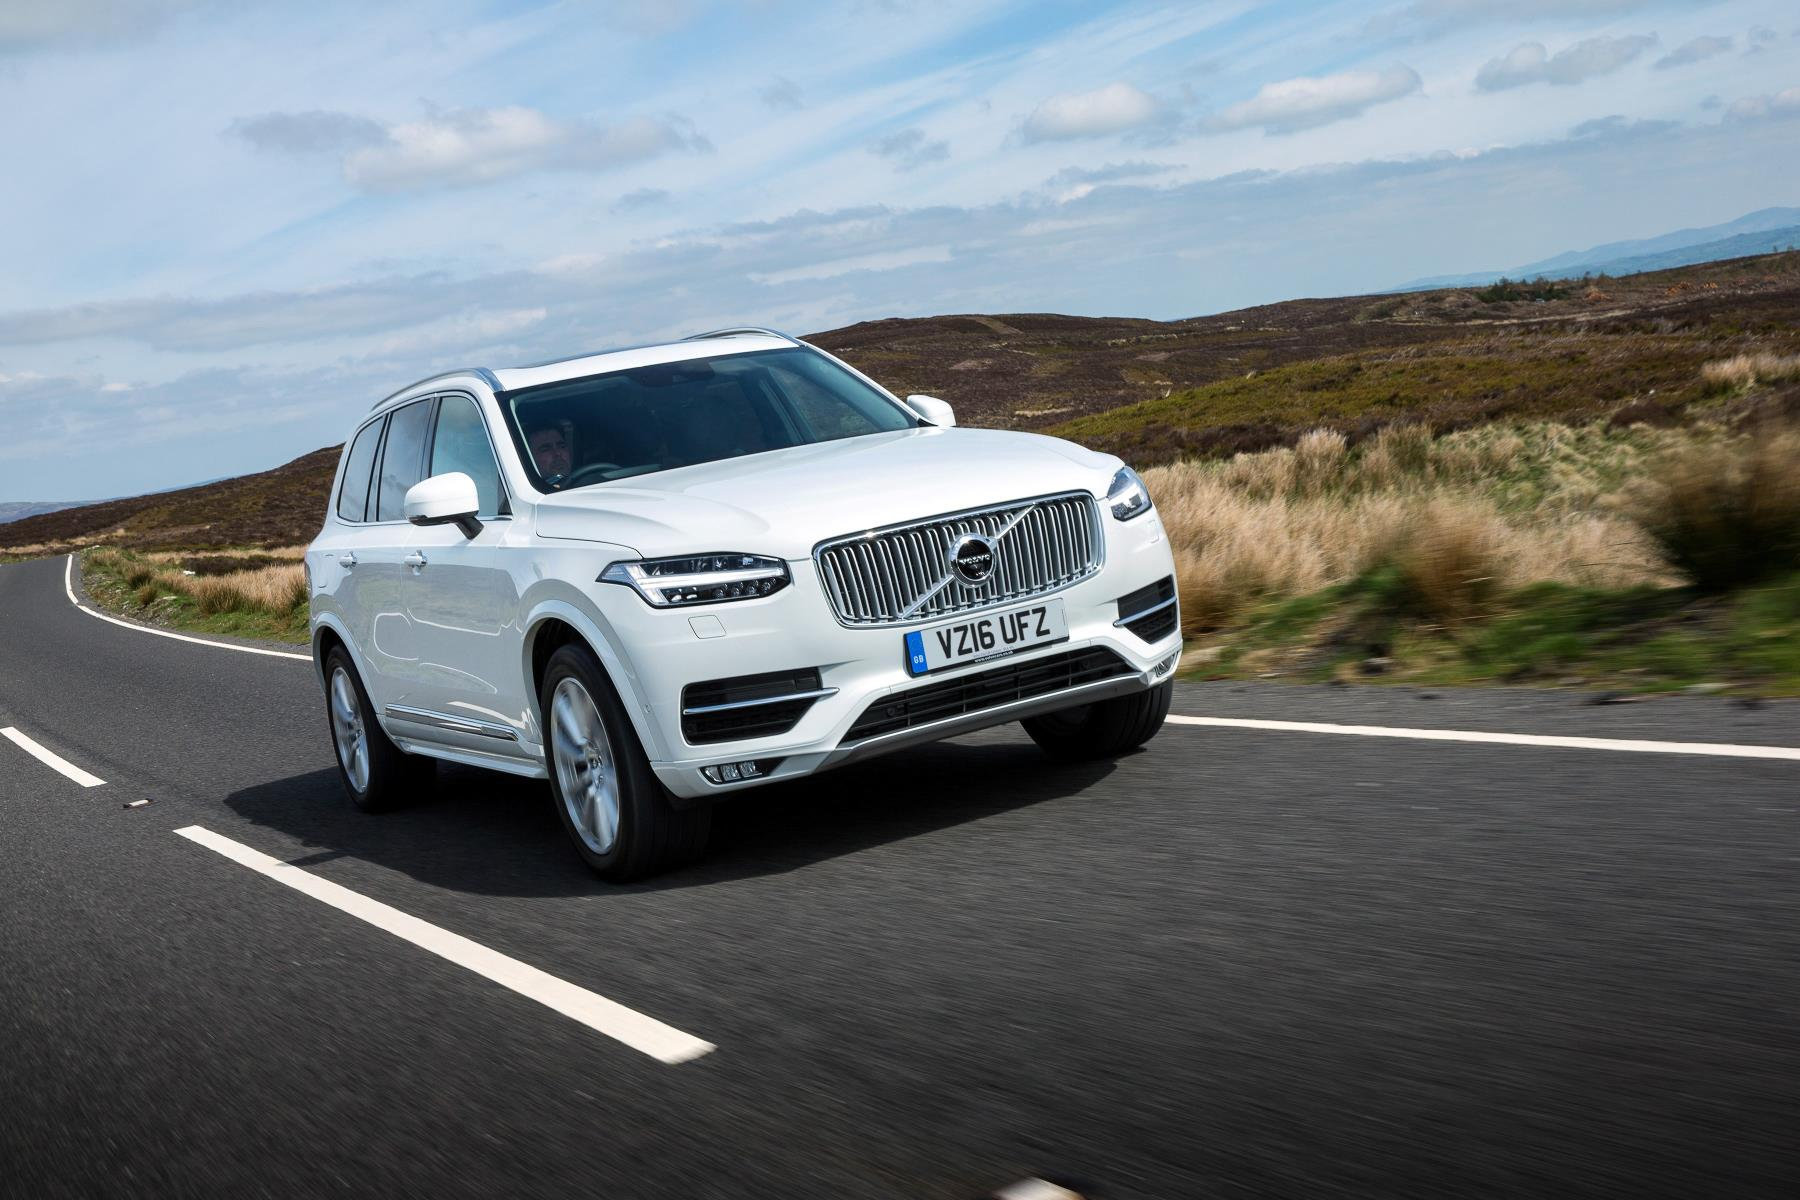 Volvo's pioneering safety technology goes beyond protecting those inside the car